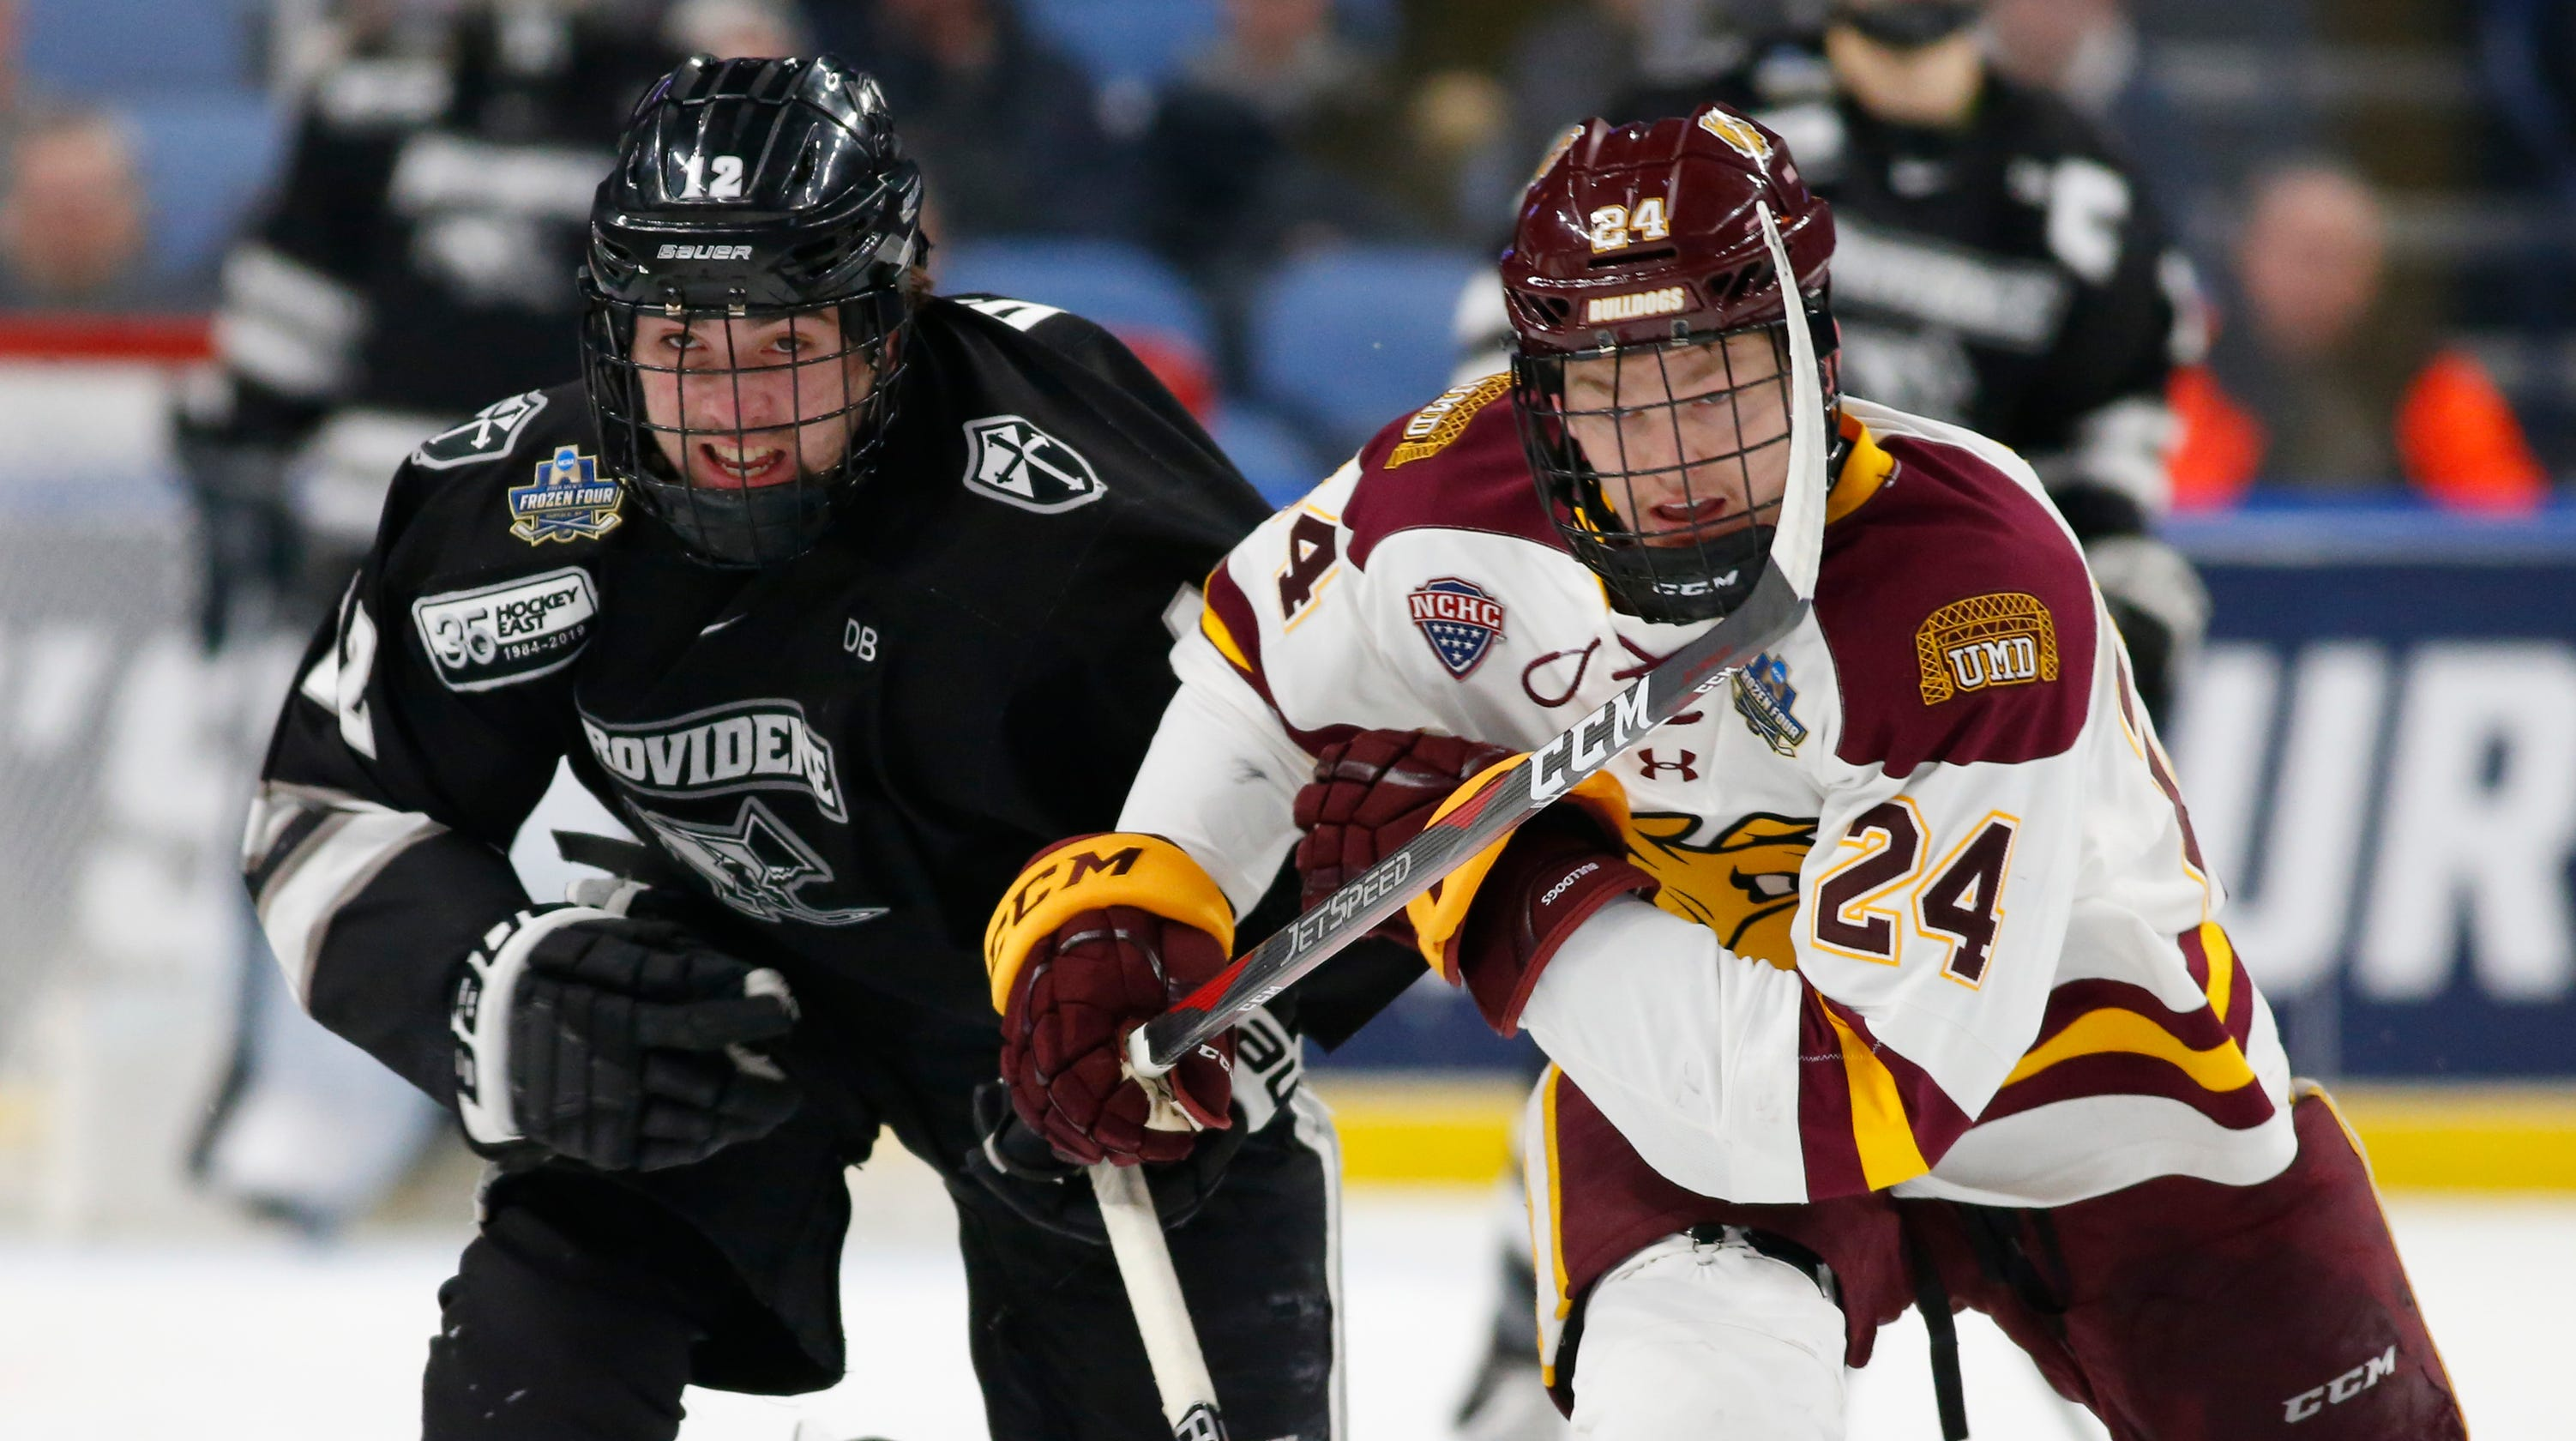 new style 6d9c3 bb540 Dugan, Providence upended by Duluth in Frozen Four semifinals